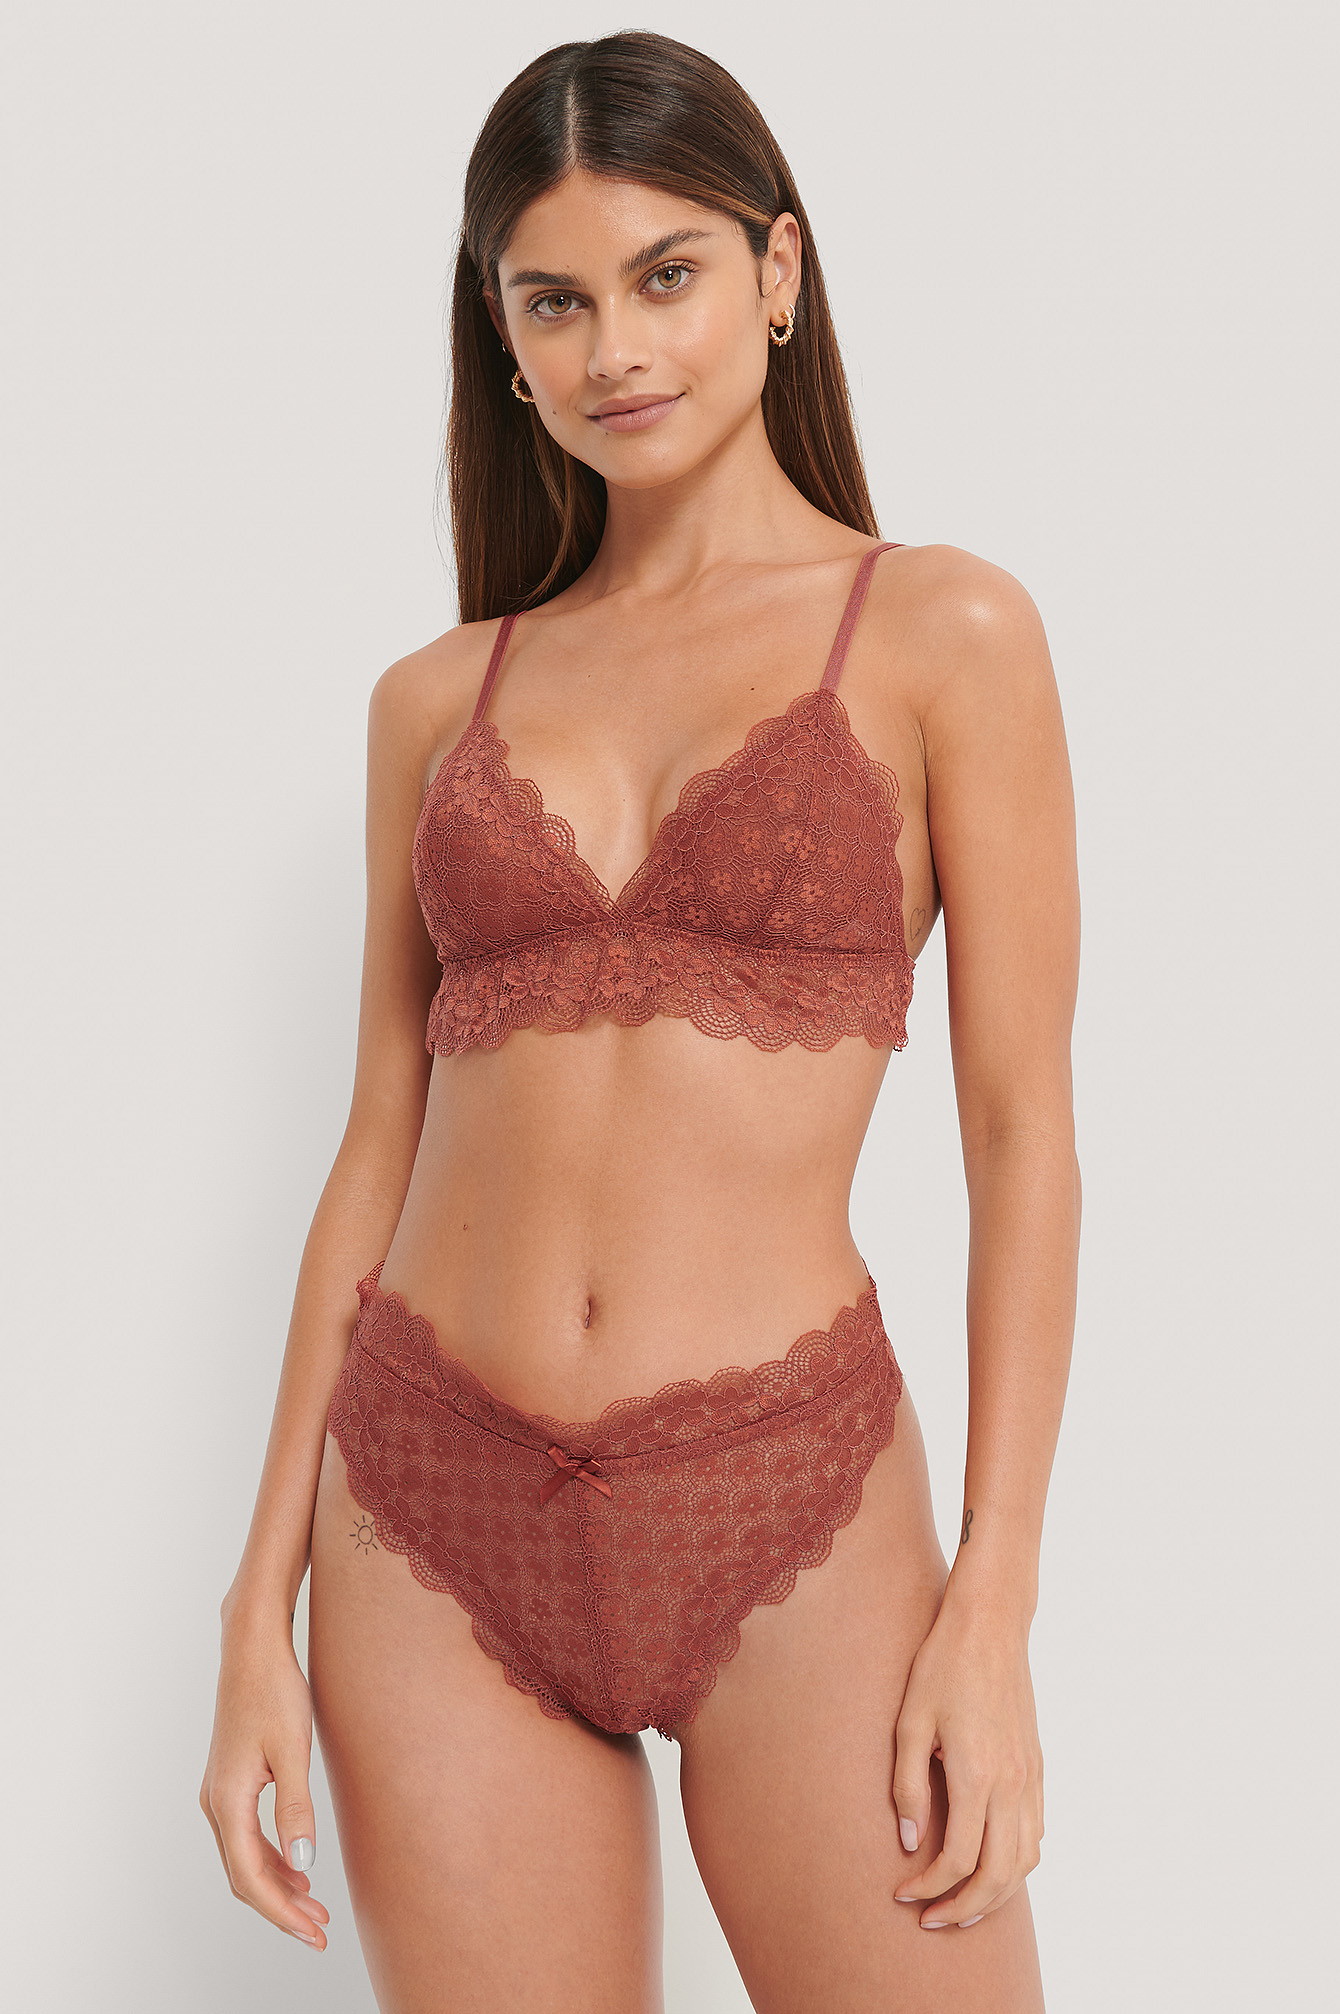 Dusty Red Chantilly Lace Cheeky Panty